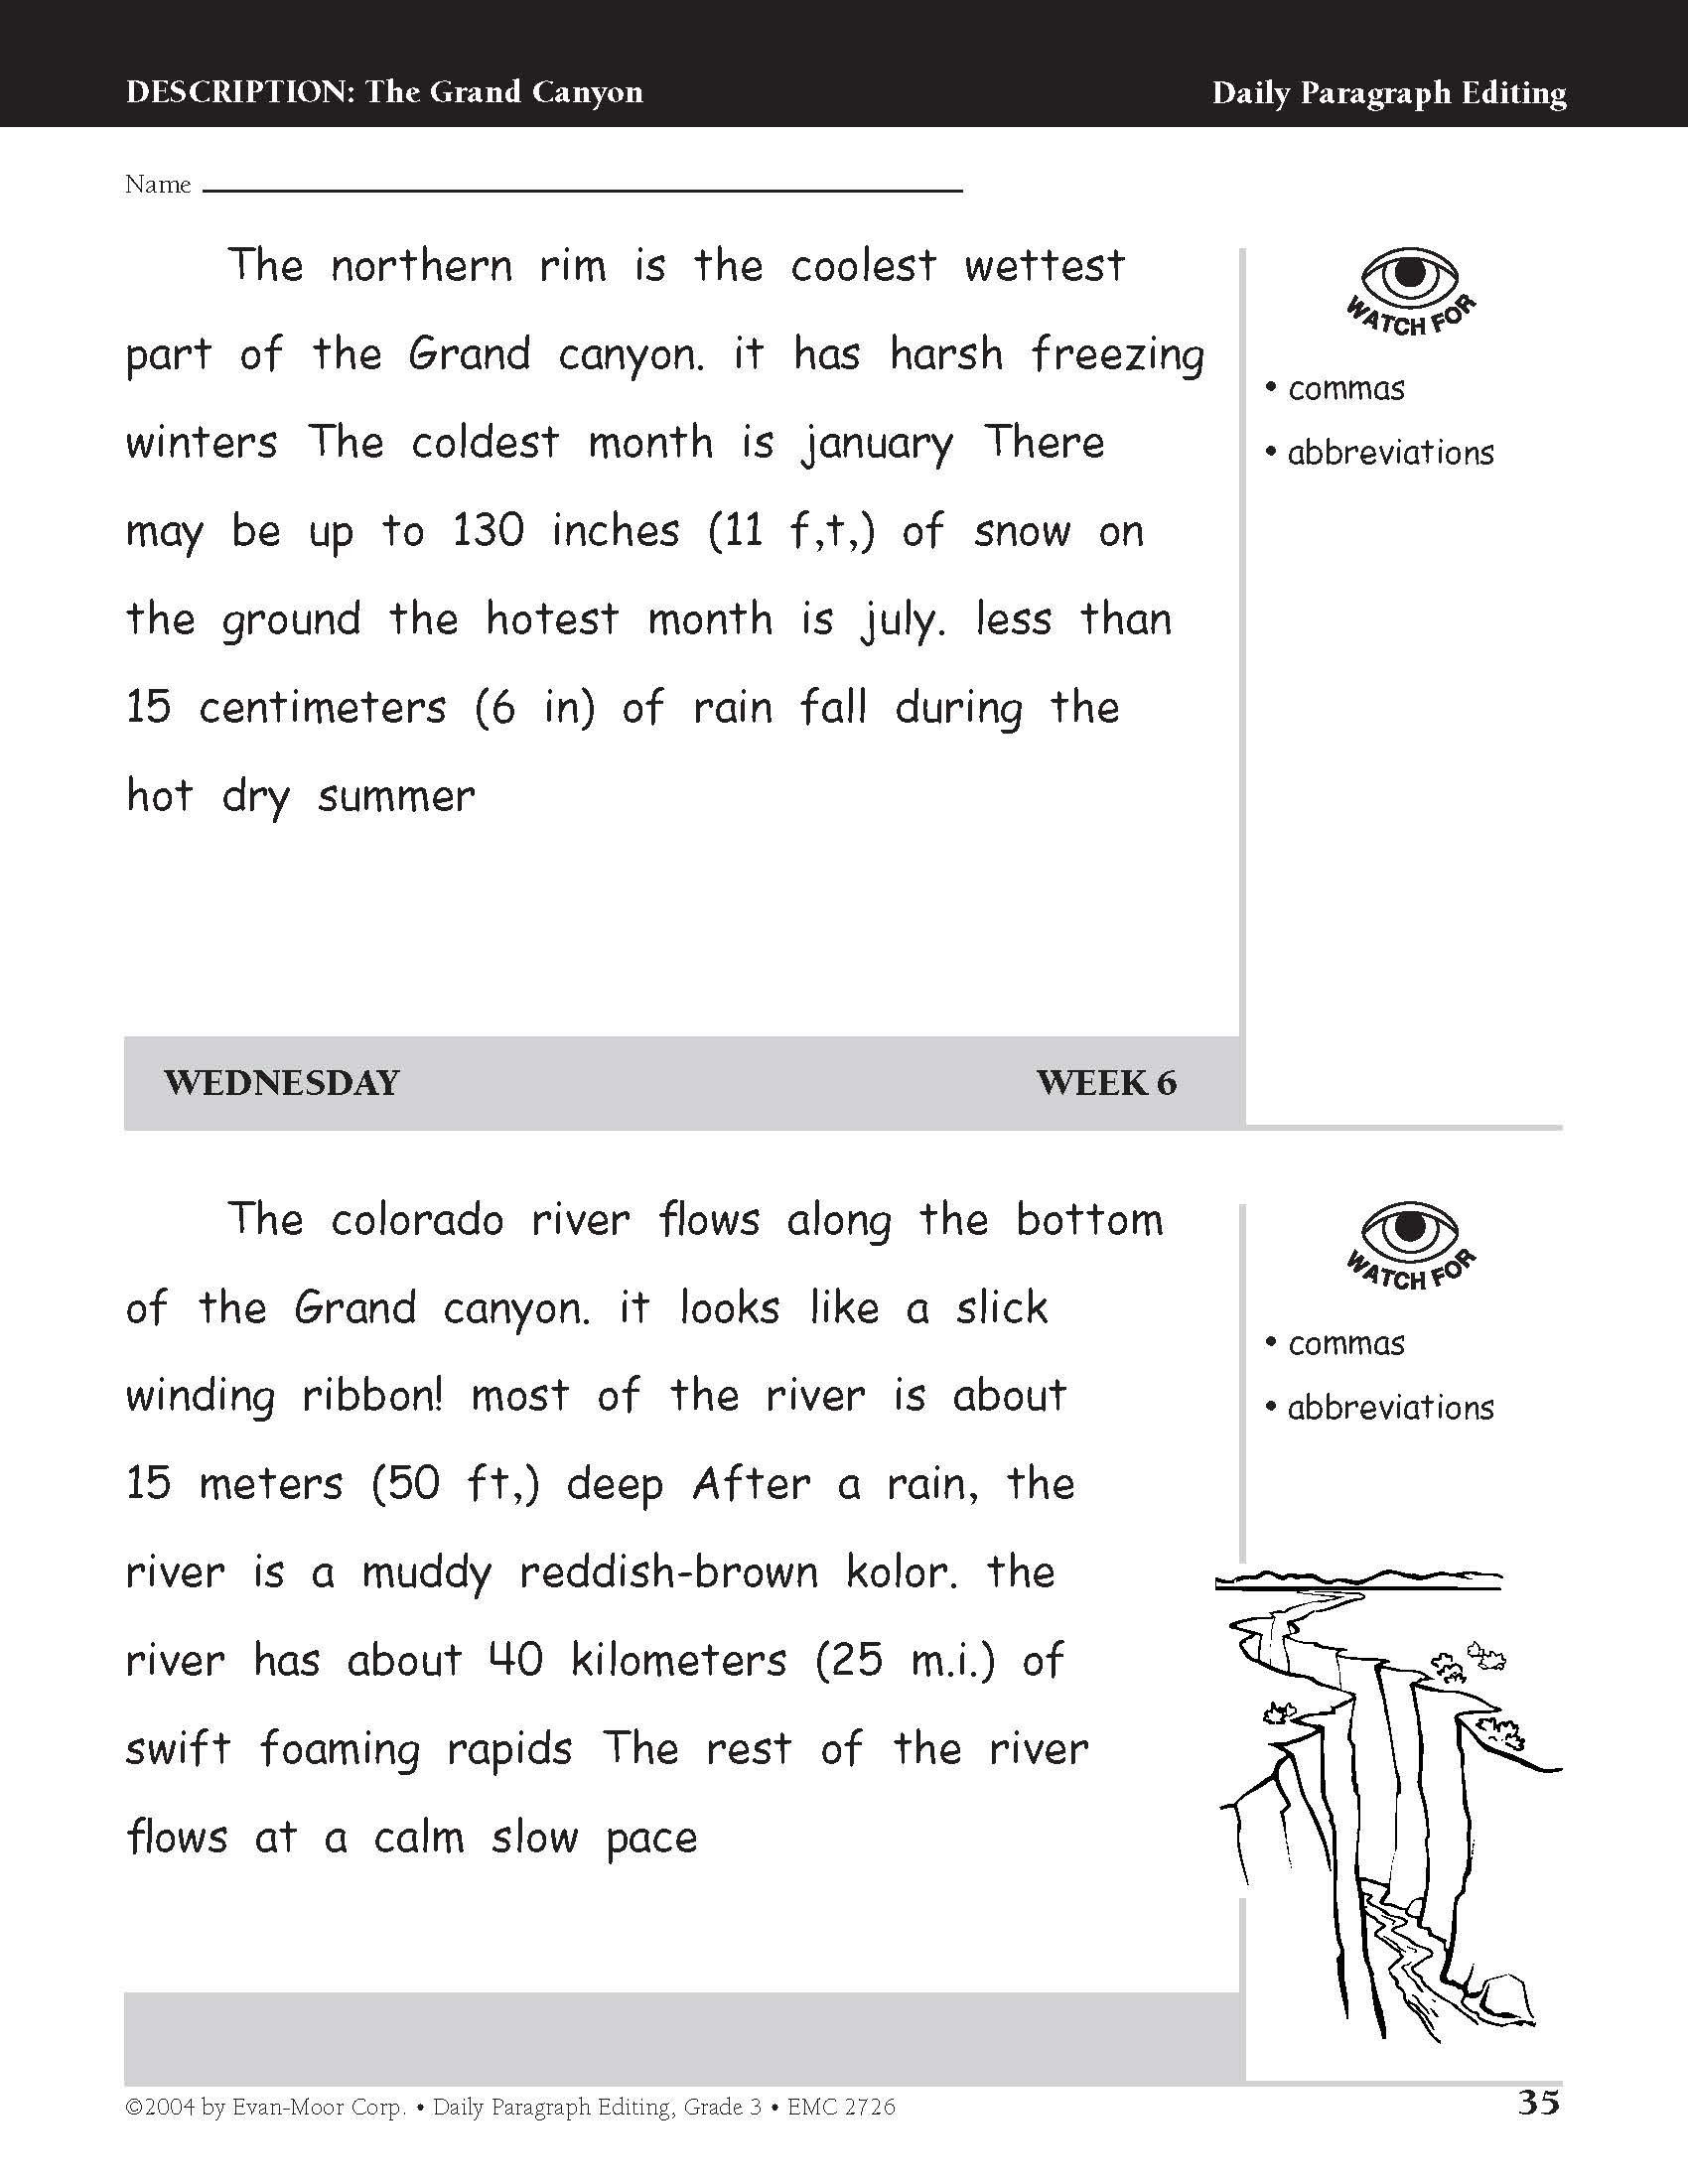 Editing Worksheet 3rd Grade Amazon Daily Paragraph Editing Grade 3